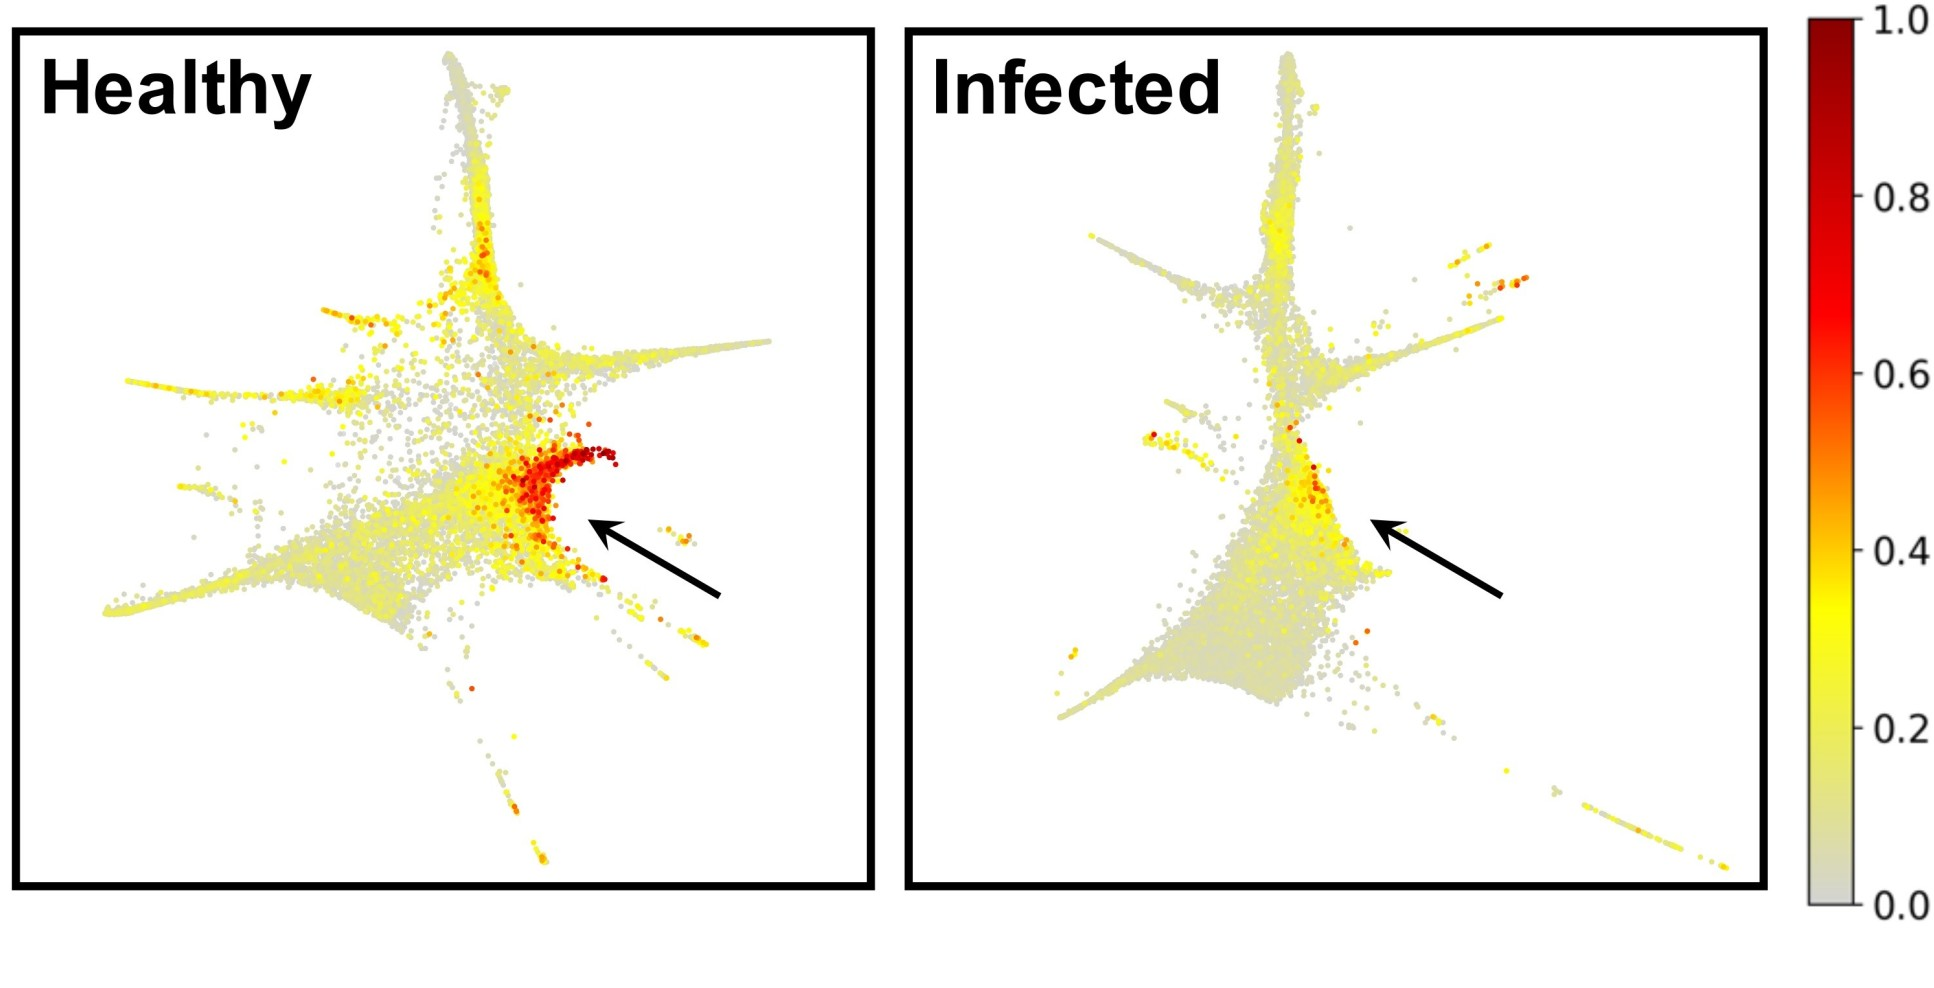 Cell images showing a large red area (left, healhty) and a greatly diminished red area (right, infected)